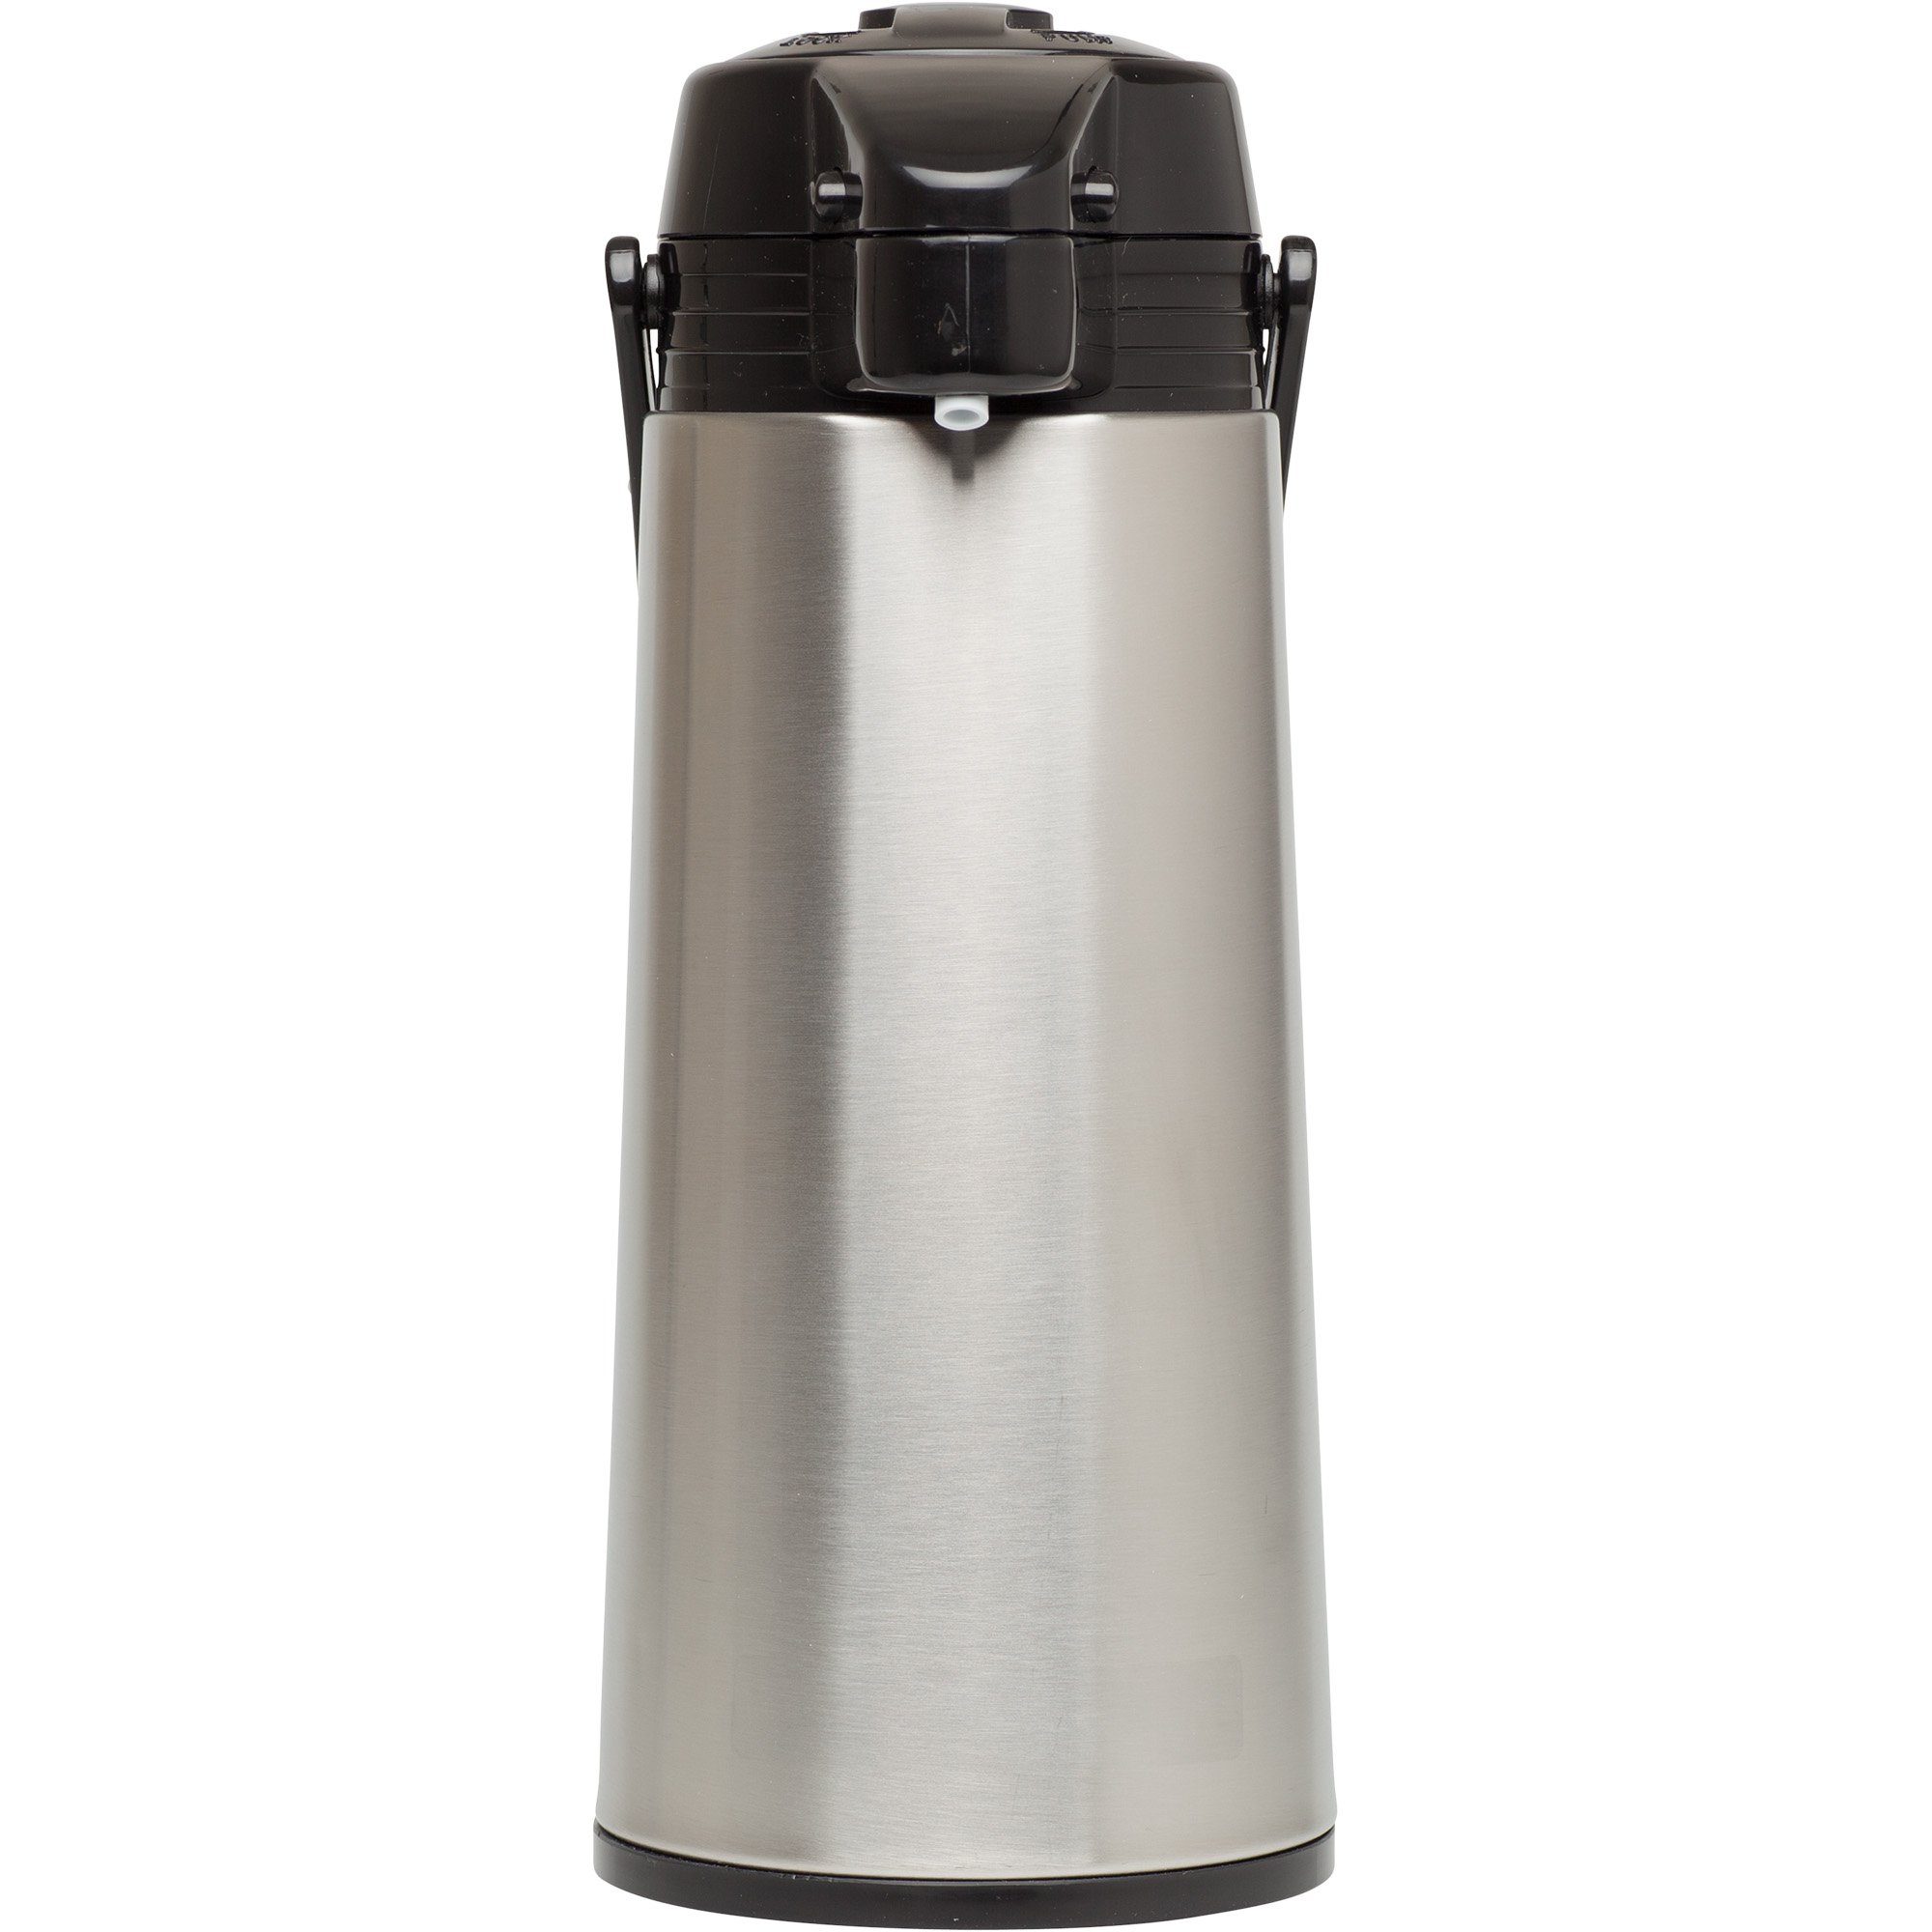 Aladdin 10-01424-004 64oz Glass-Lined 64 oz Stainless Steel Vacuum Insulated Air Pot, by Aladdin